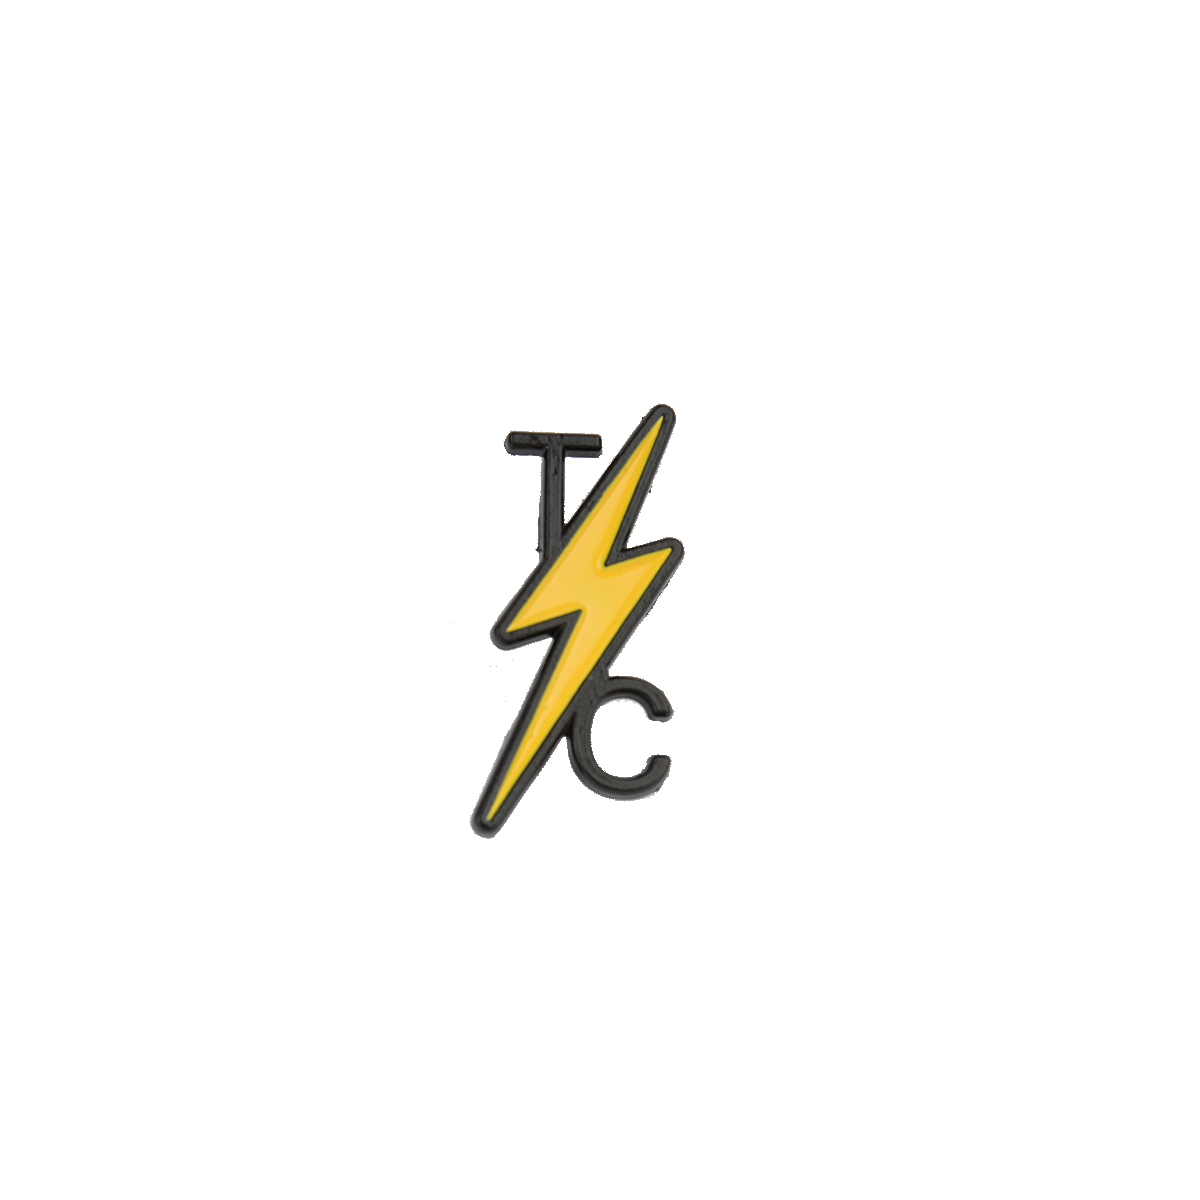 Bolt Lapel Pin